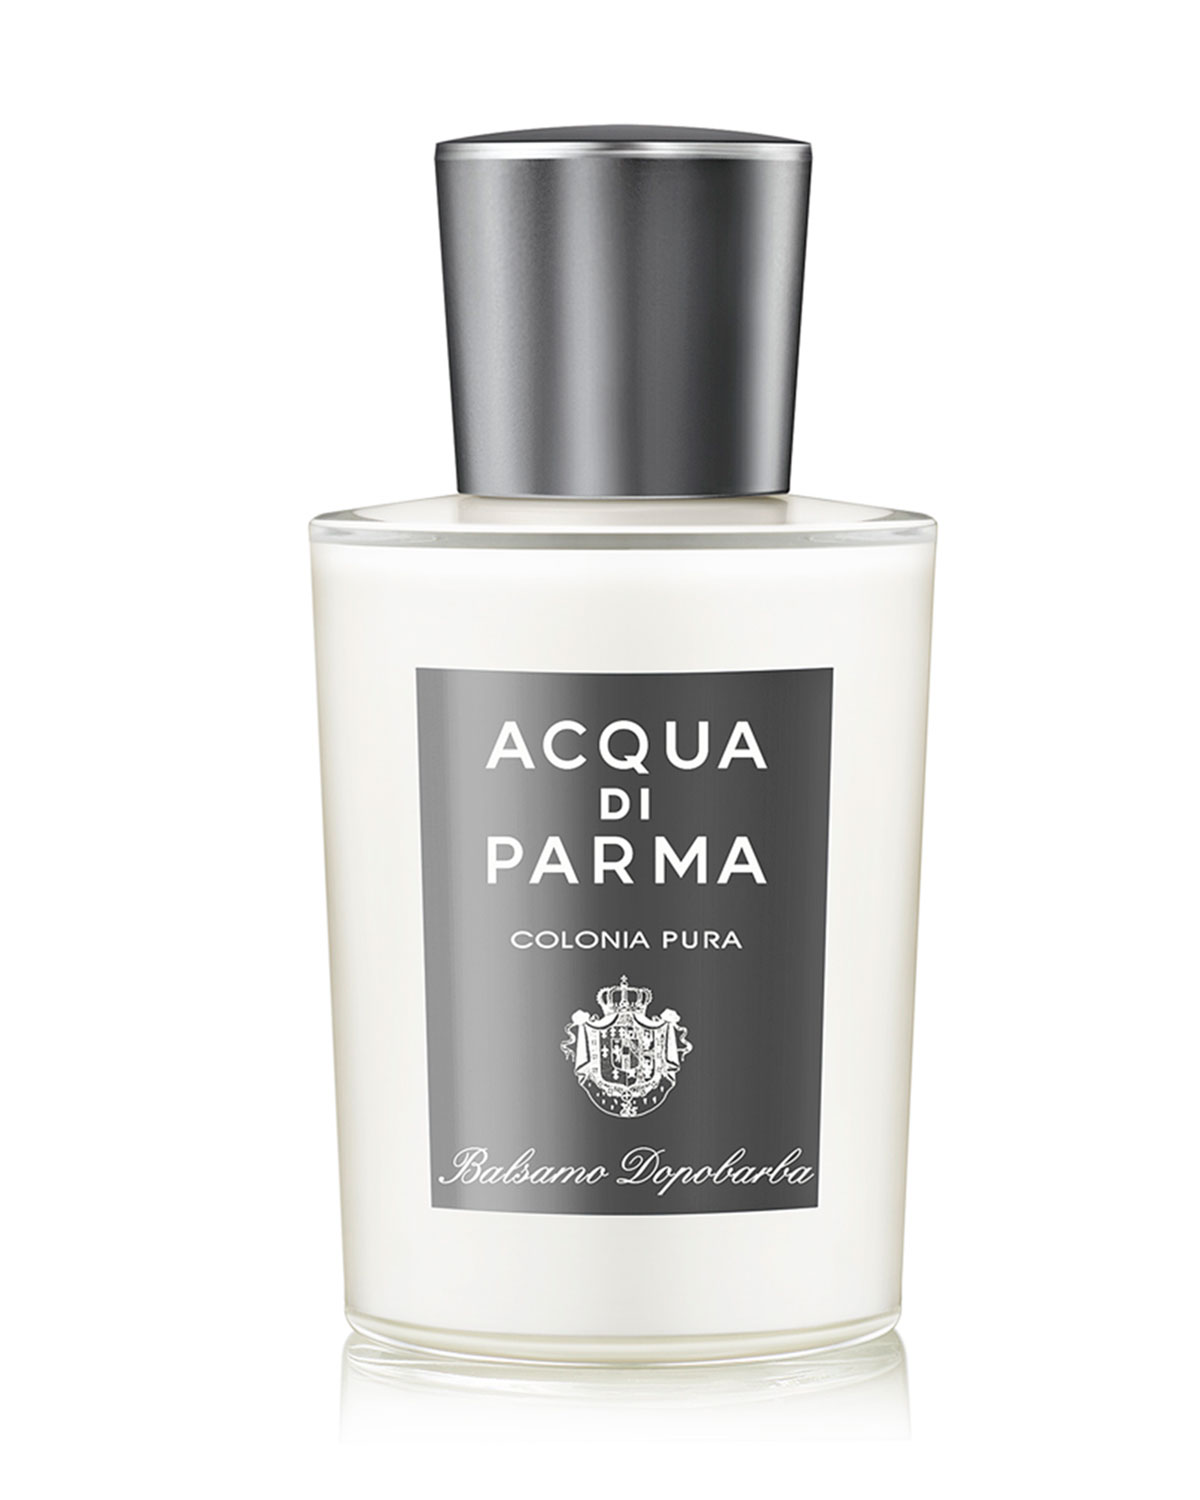 Acqua Di Parma Colonia Pura After Shave Balm, 3.4 oz./ 100 mL